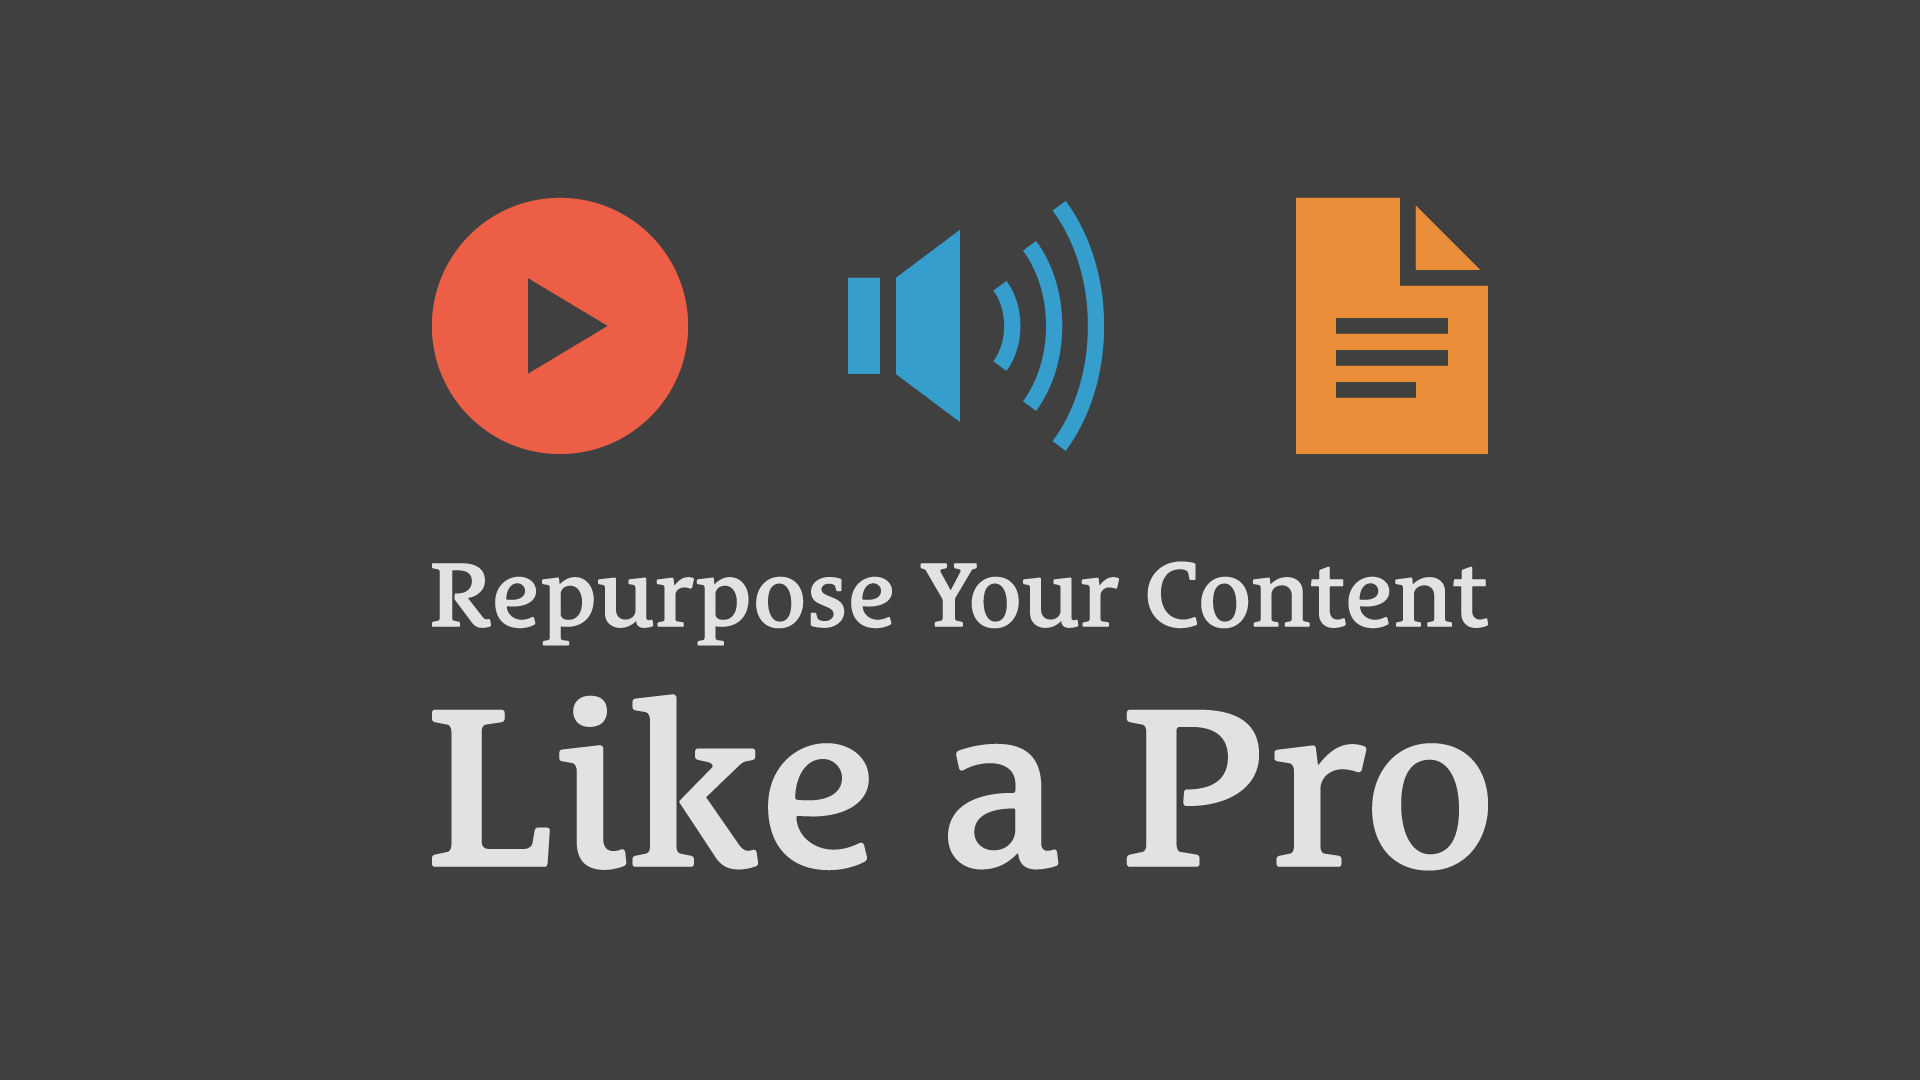 How to Repurpose Your Content Like a Pro